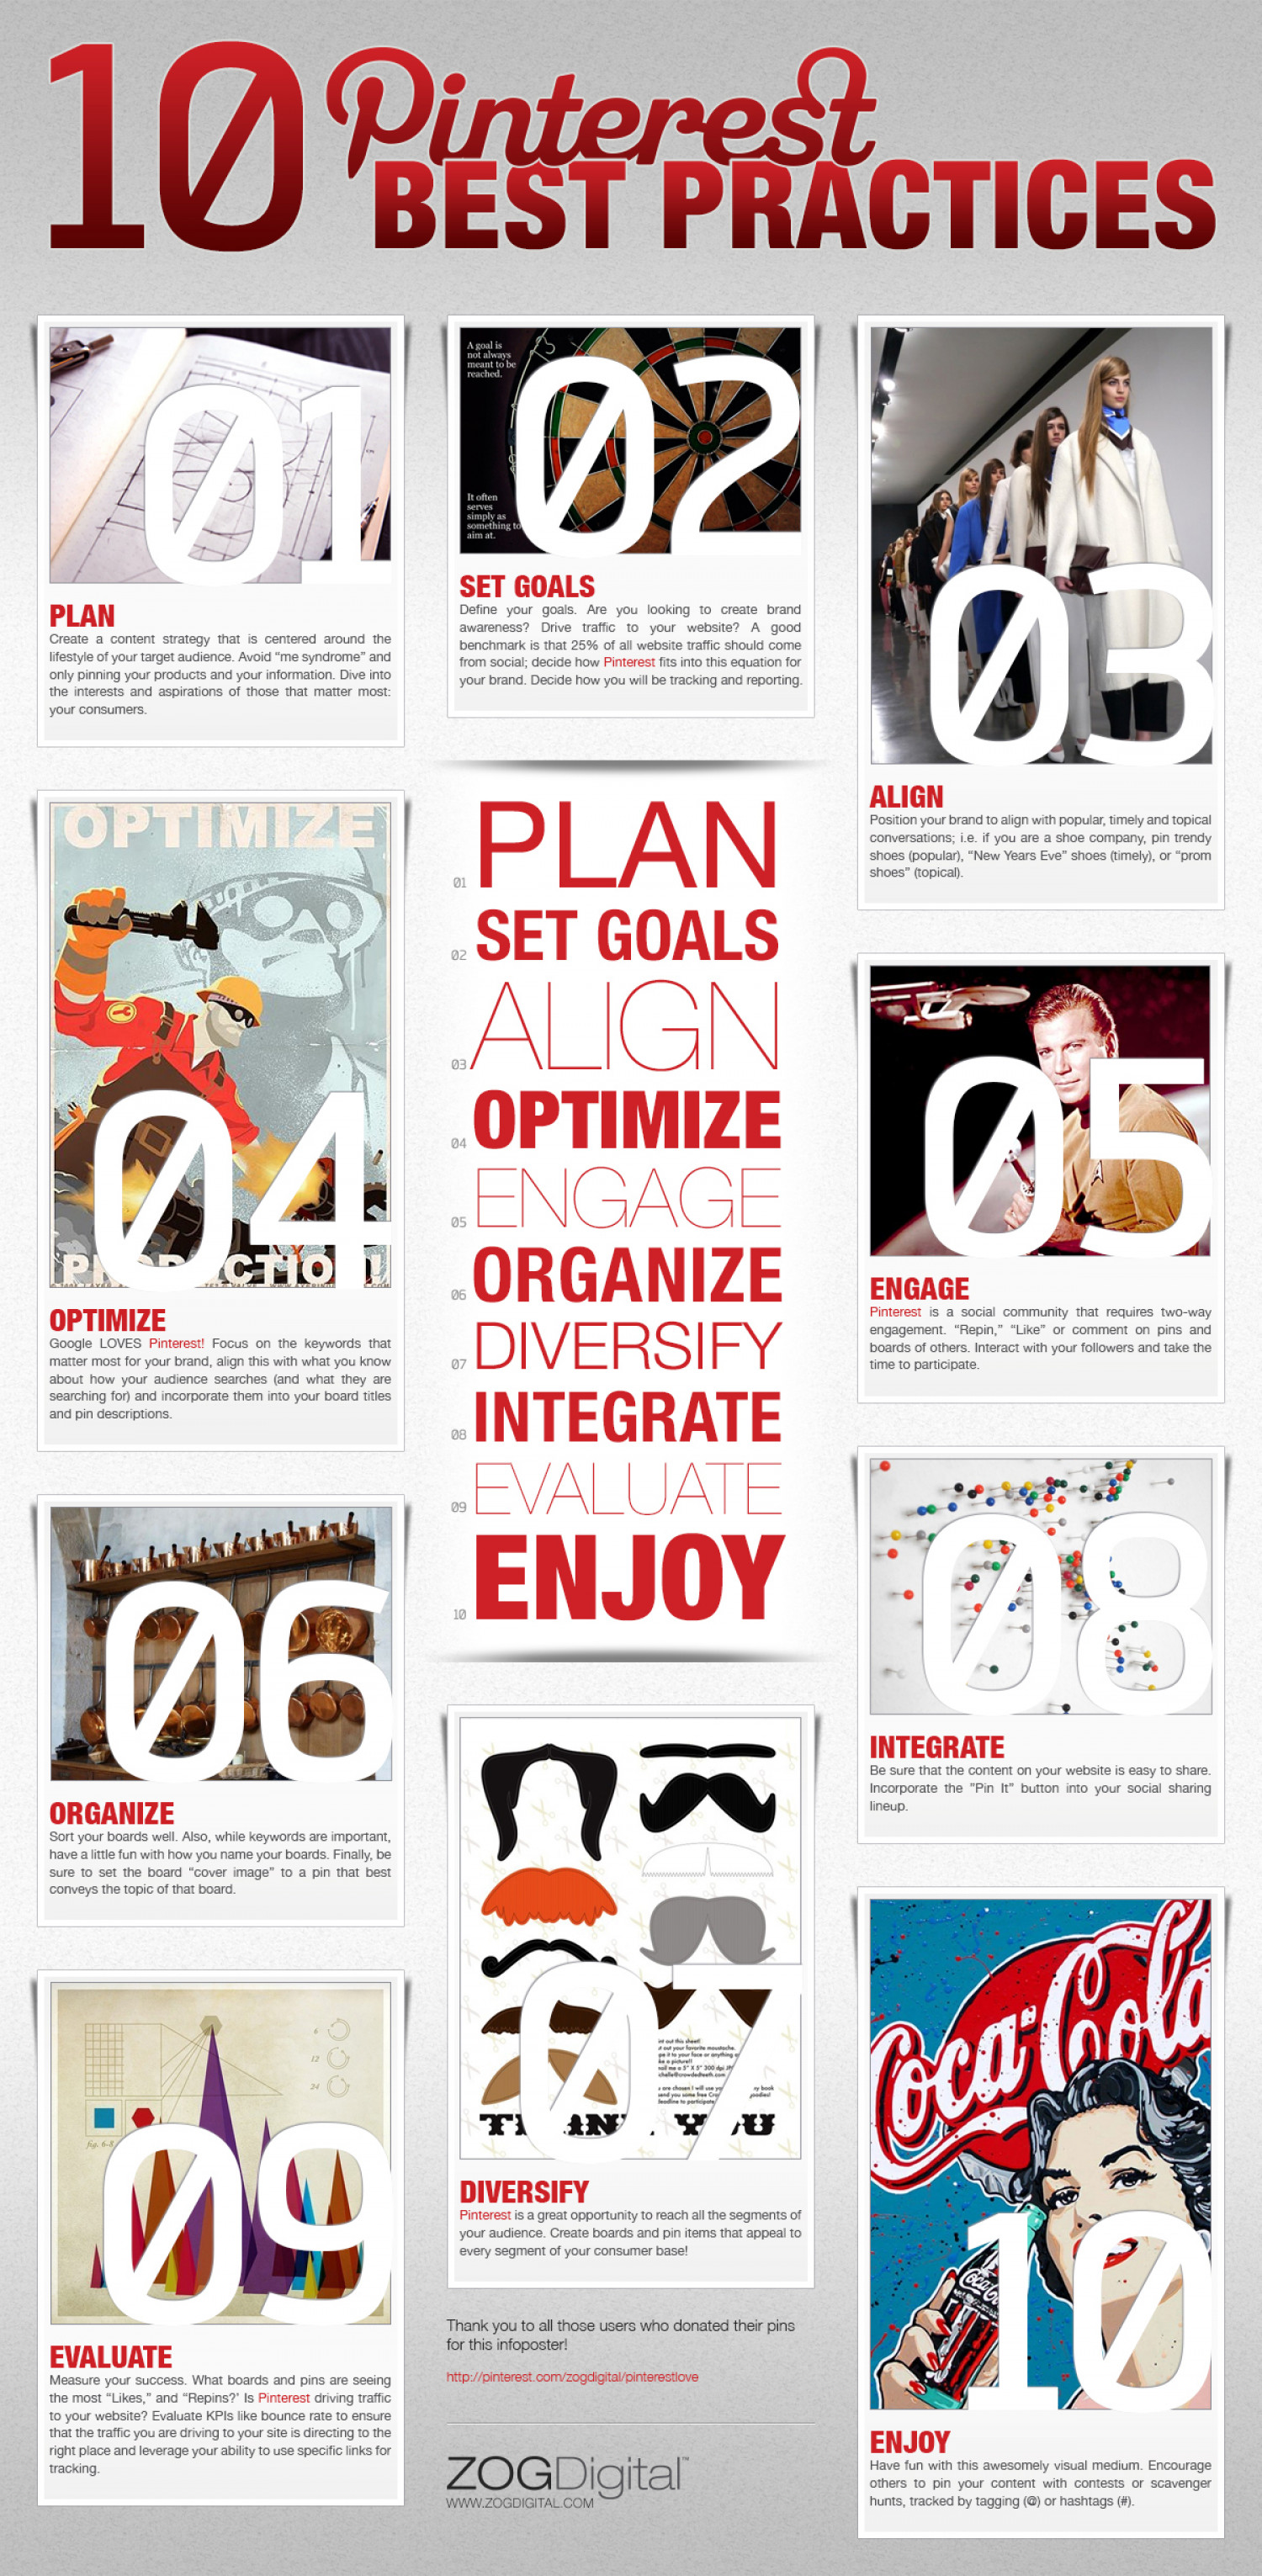 Pinterest Best Practices Infographic